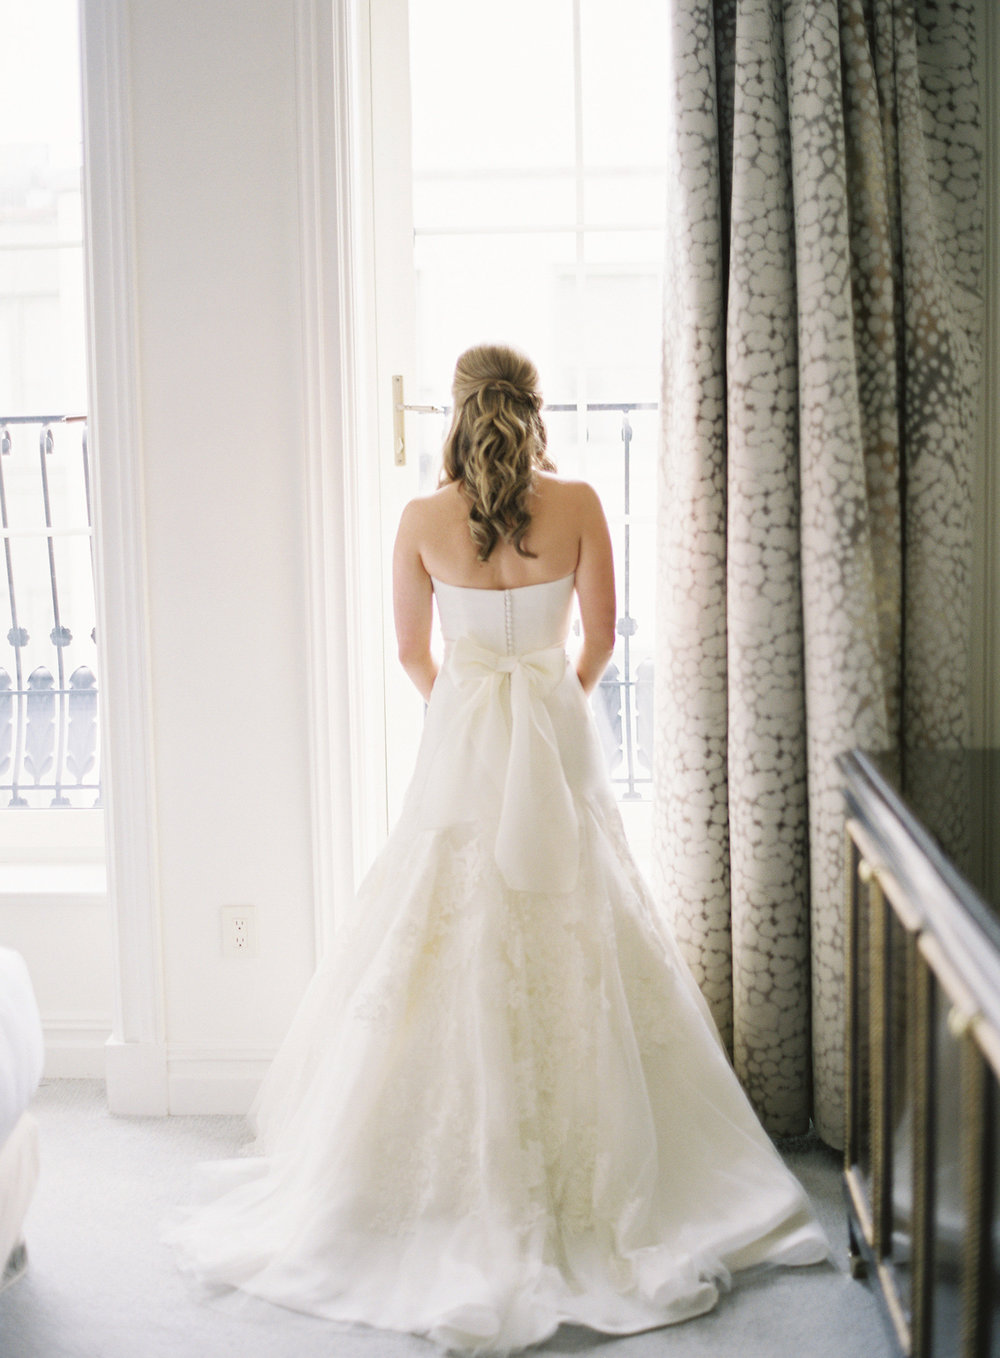 Plaza Hotel Wedding, Judy Pak Photography, Ang Weddings and Events planning, Putnam & Putnam flowers, Vera Wang gown